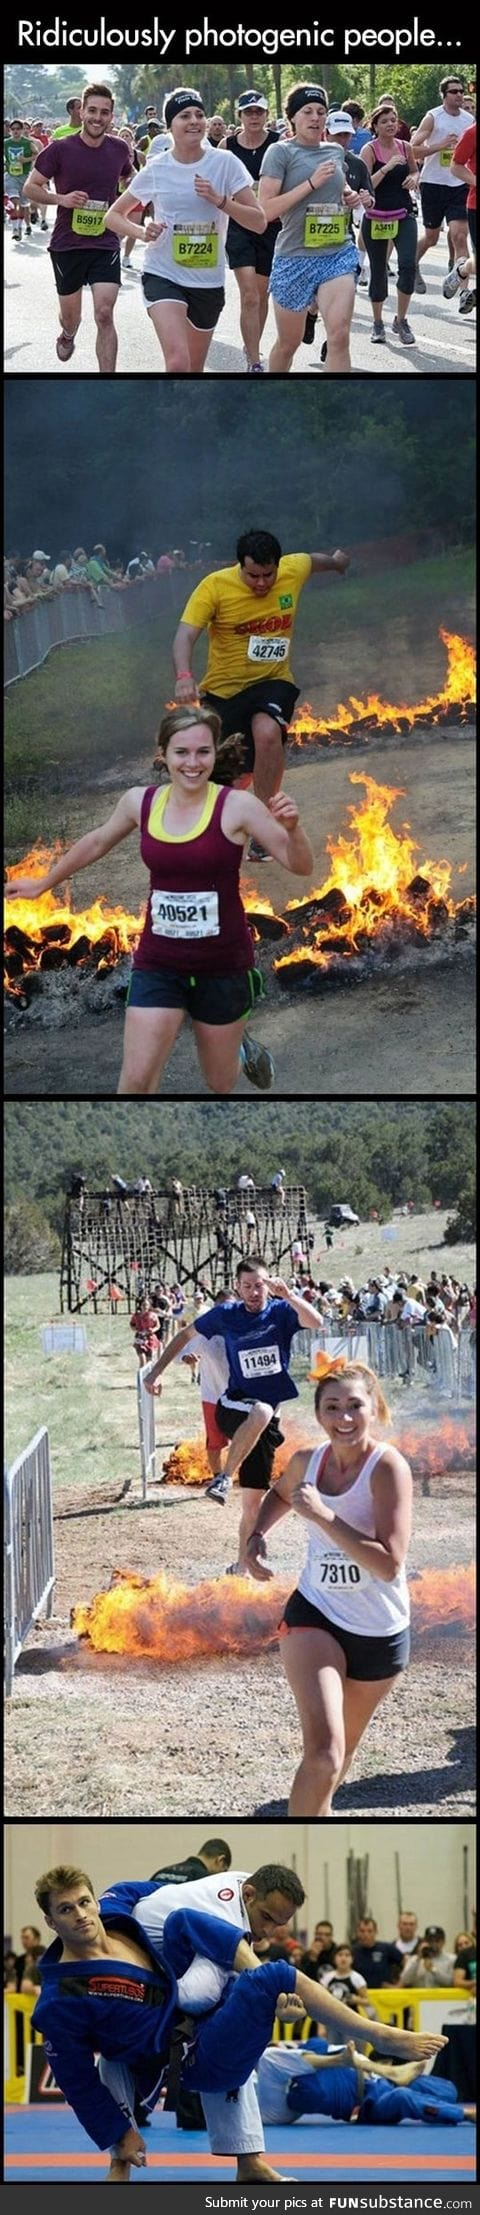 Ridiculously photogenic people